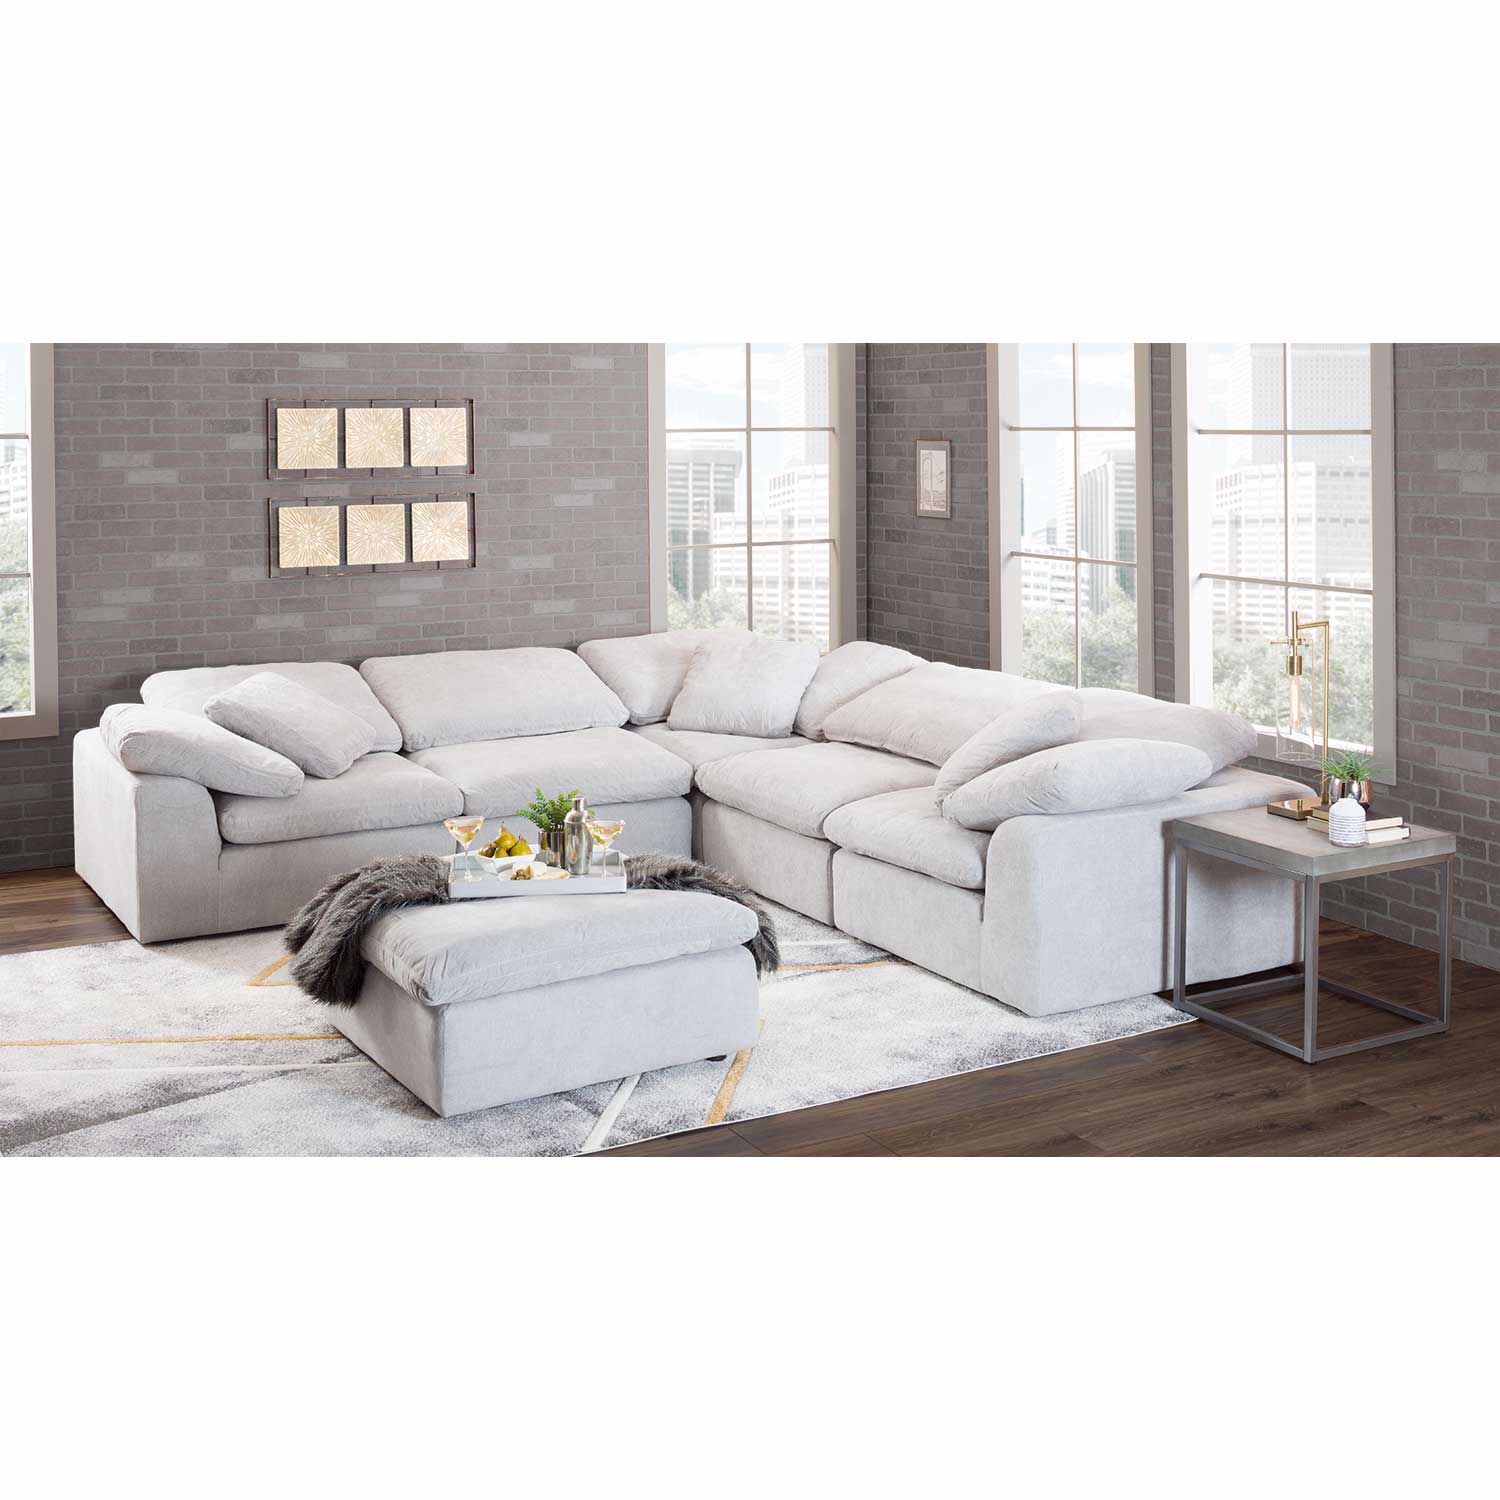 Picture of Slouch 5PC Sectional